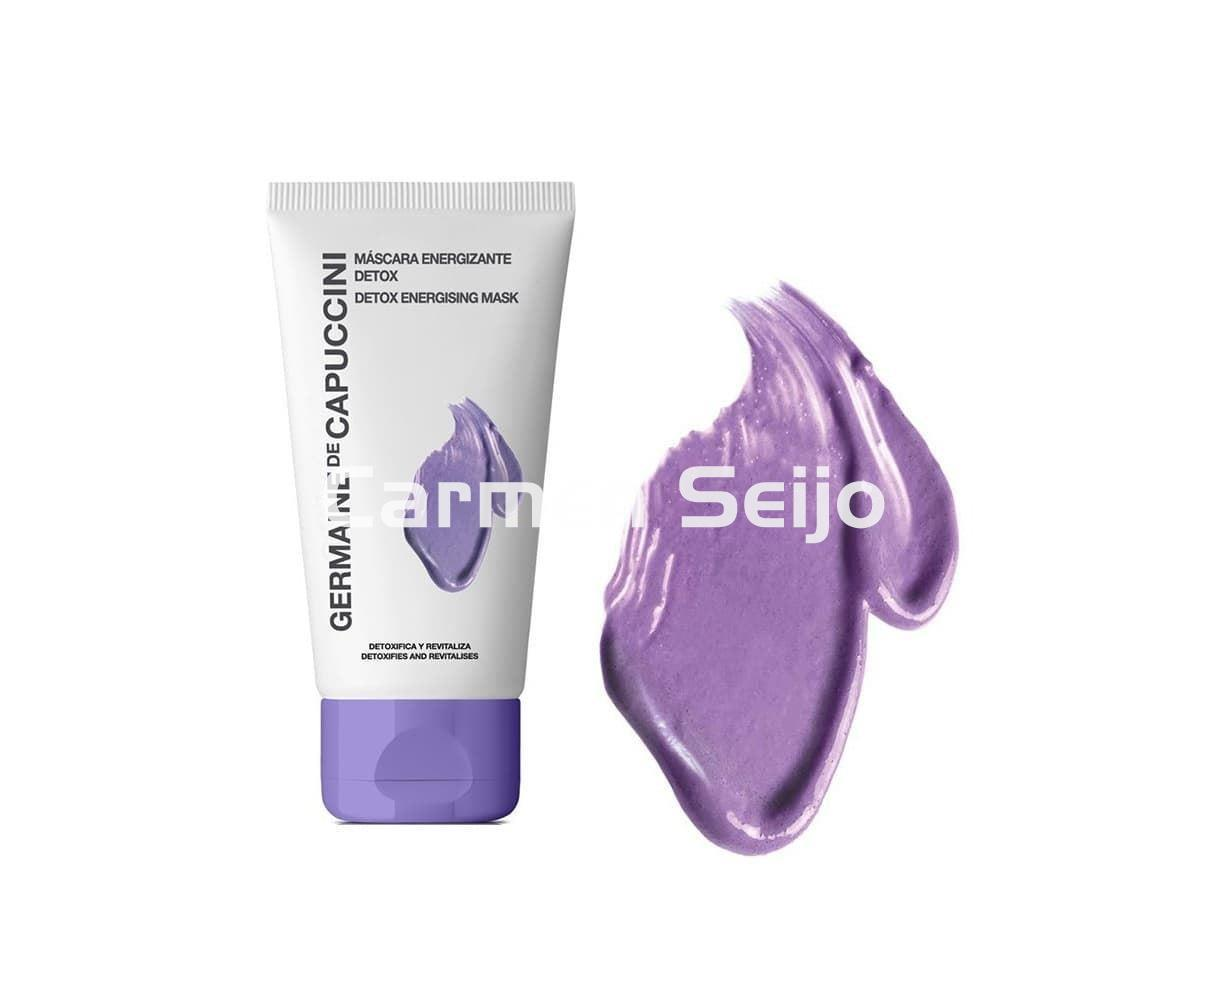 Germaine de Capuccini Máscara Energizante Detox Custom Mask Options - Imagen 1